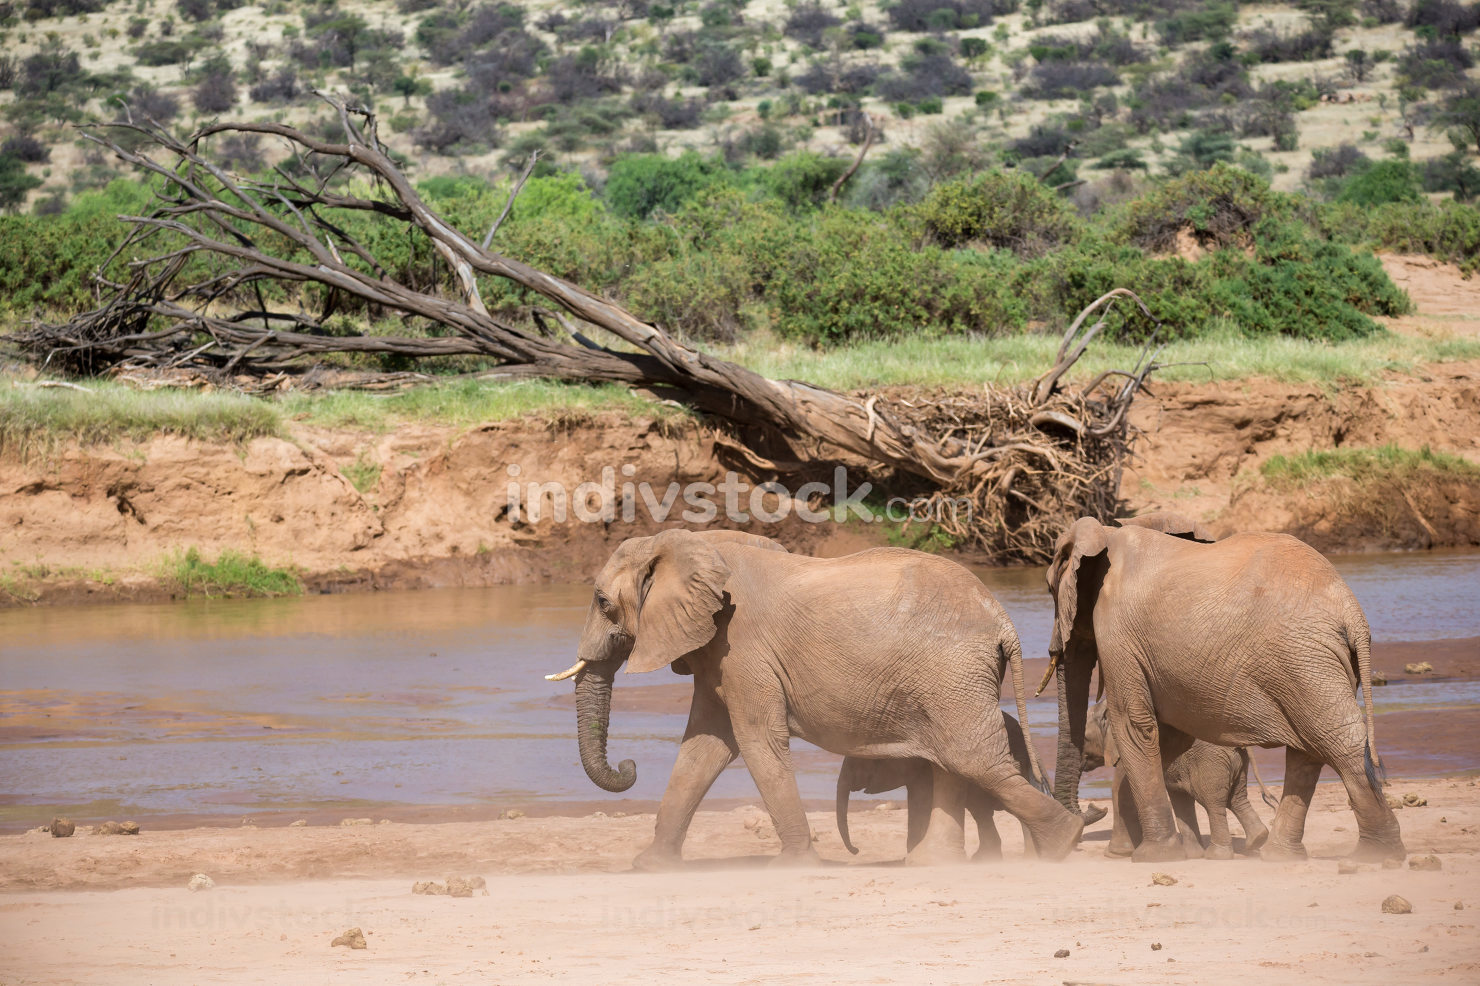 Elephant family on the banks of a river in the middle of the Nat